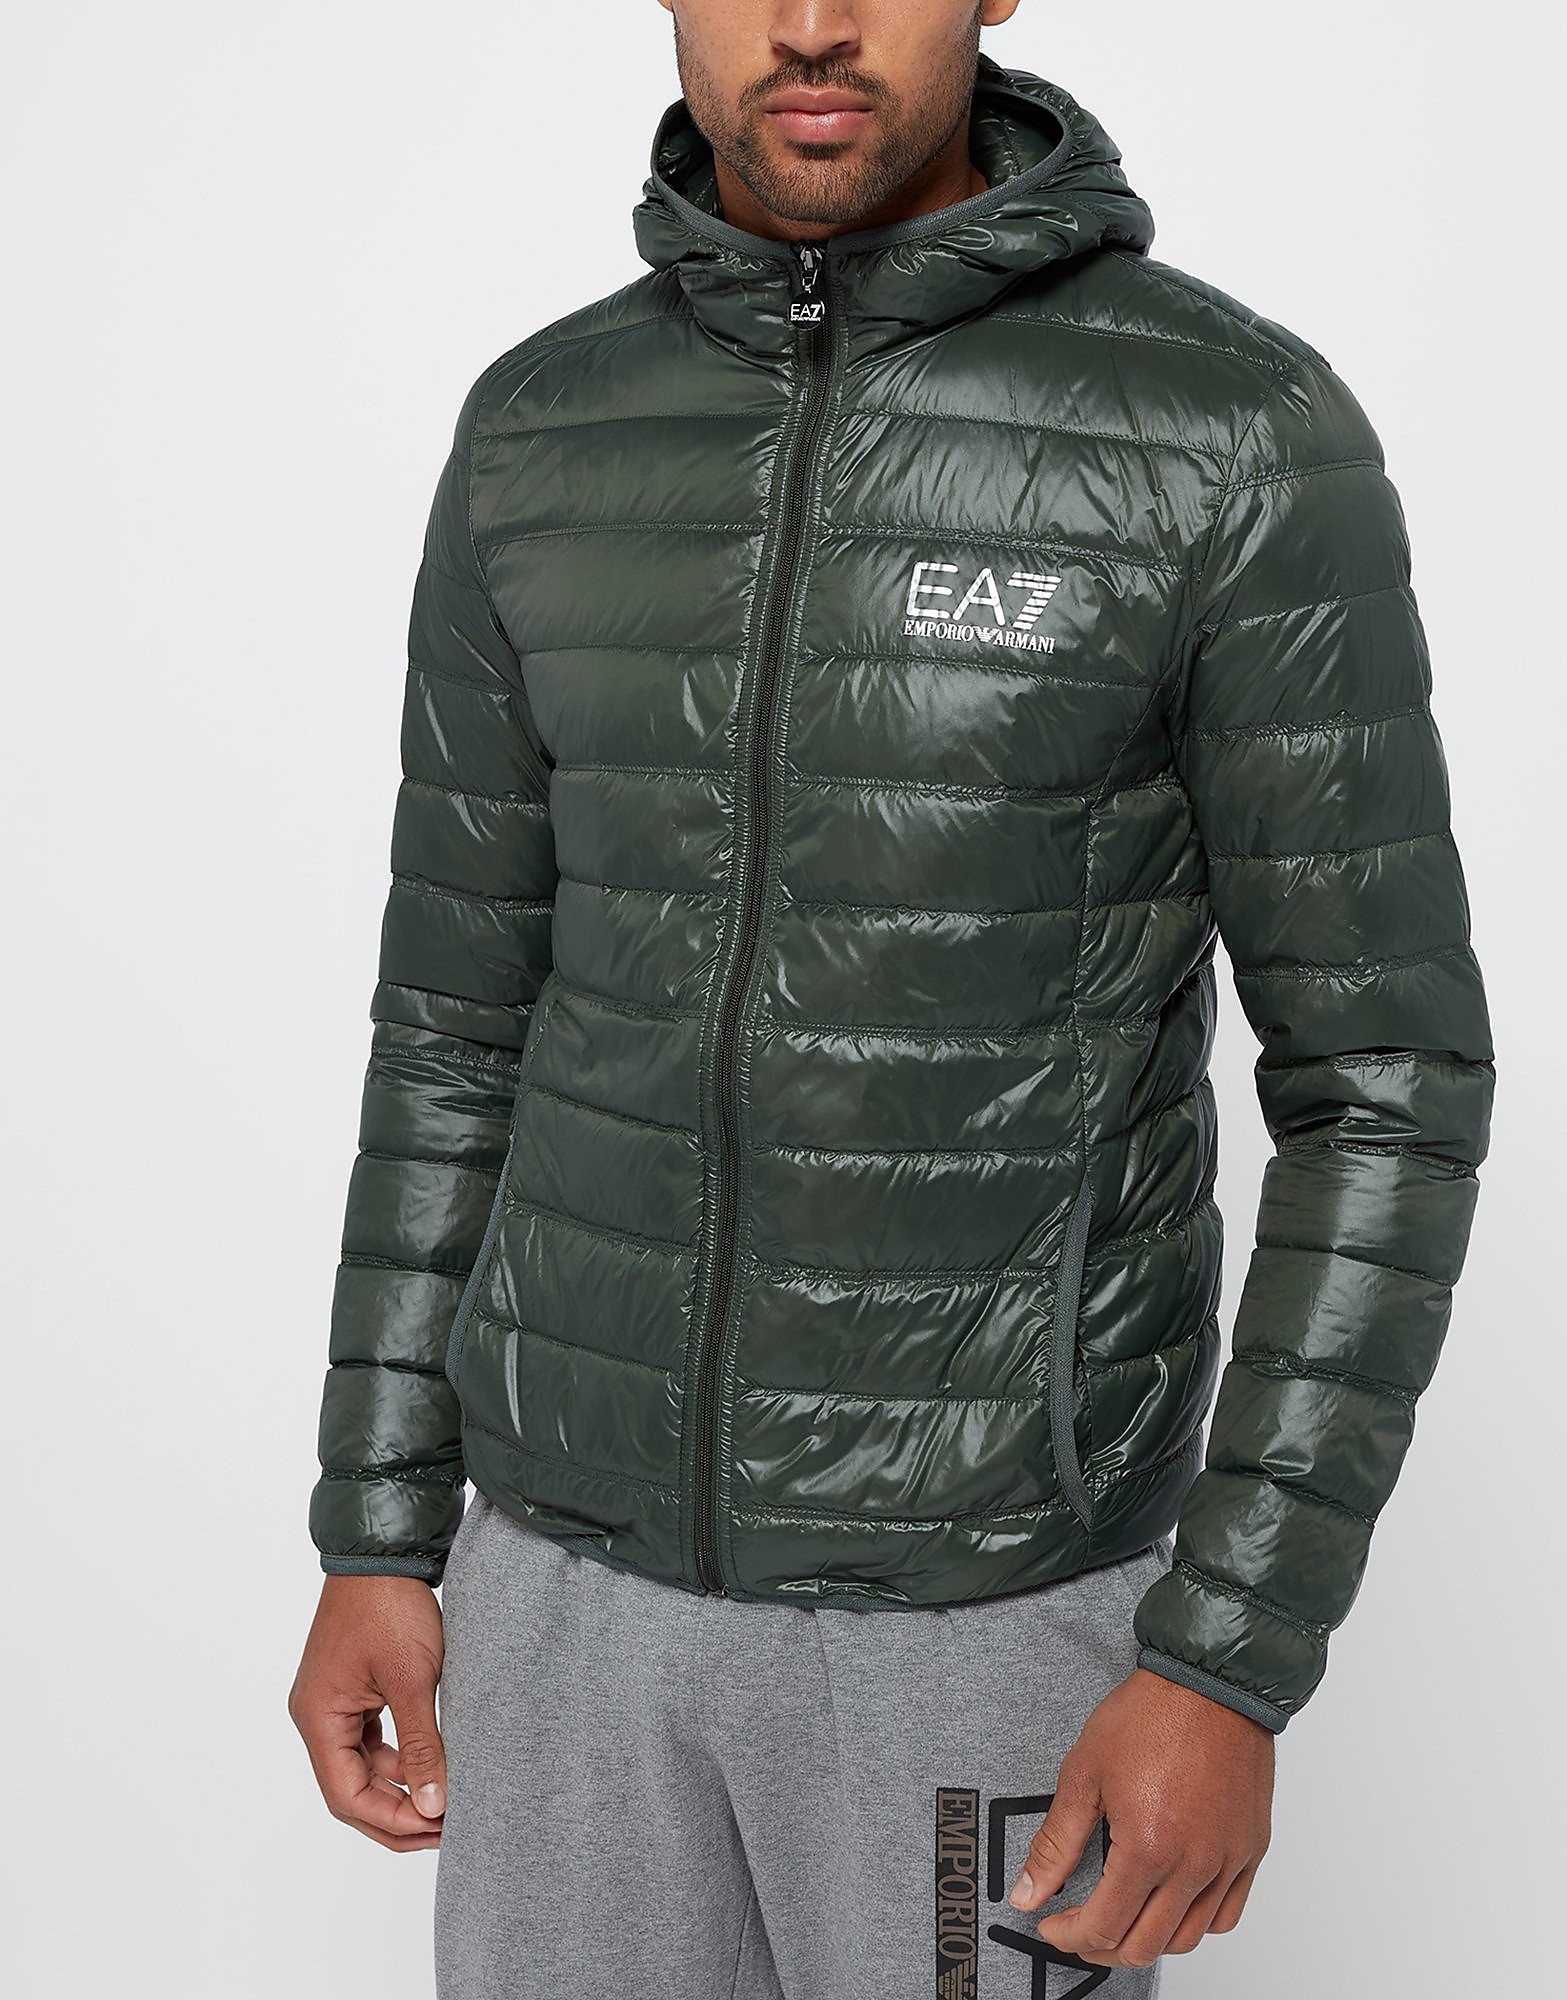 Emporio Armani EA7 Bubble Jacket